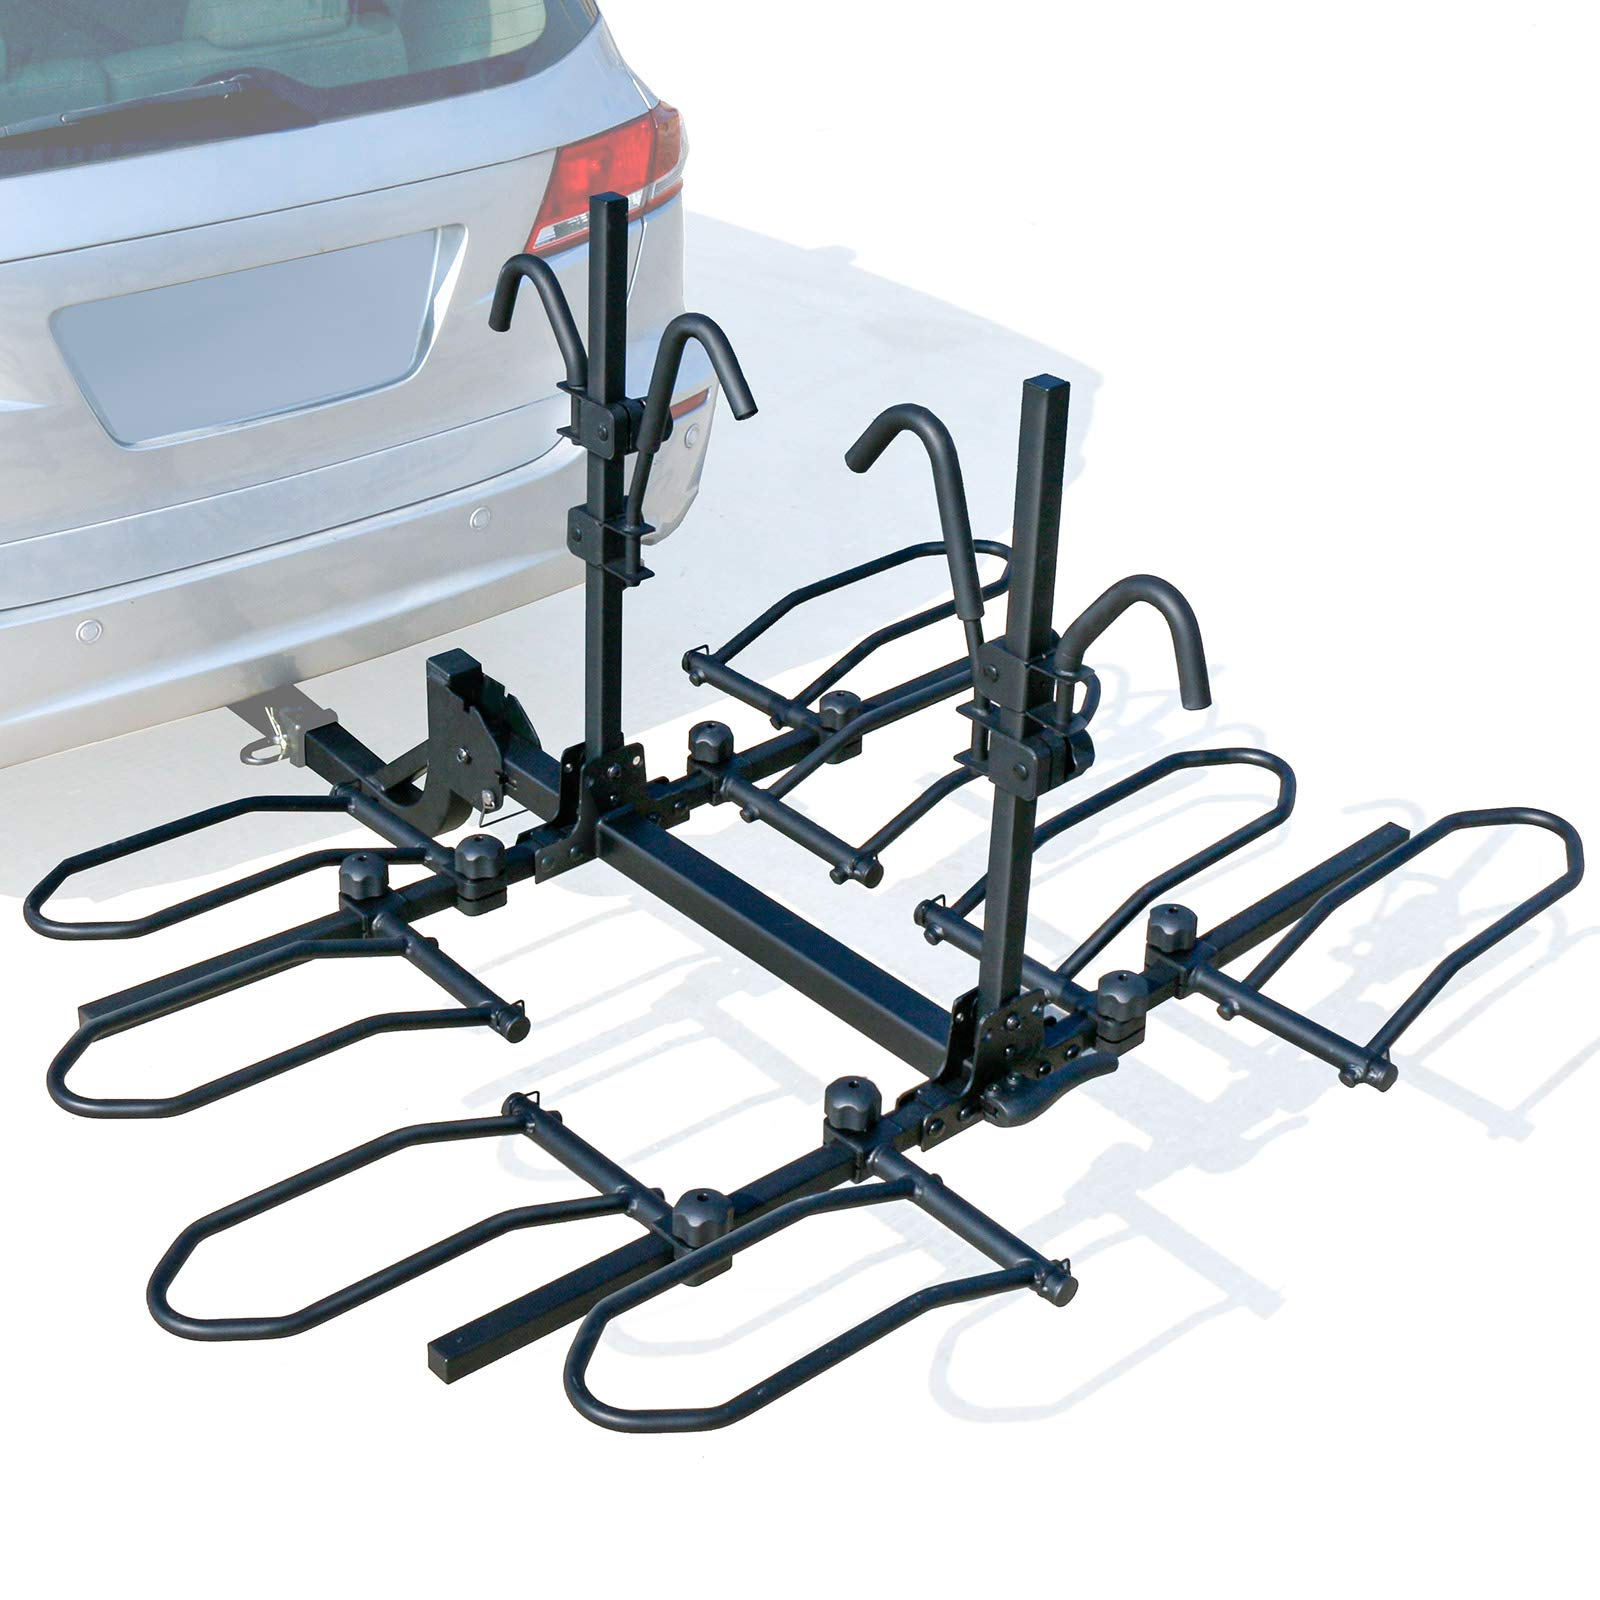 "Leader Accessories 4-Bike Platform Style Hitch Mount Bike Rack, Tray Style Bicycle Carrier Racks Foldable Rack for Cars, Trucks, SUV and Minivans with 2"" Hitch Receiver"